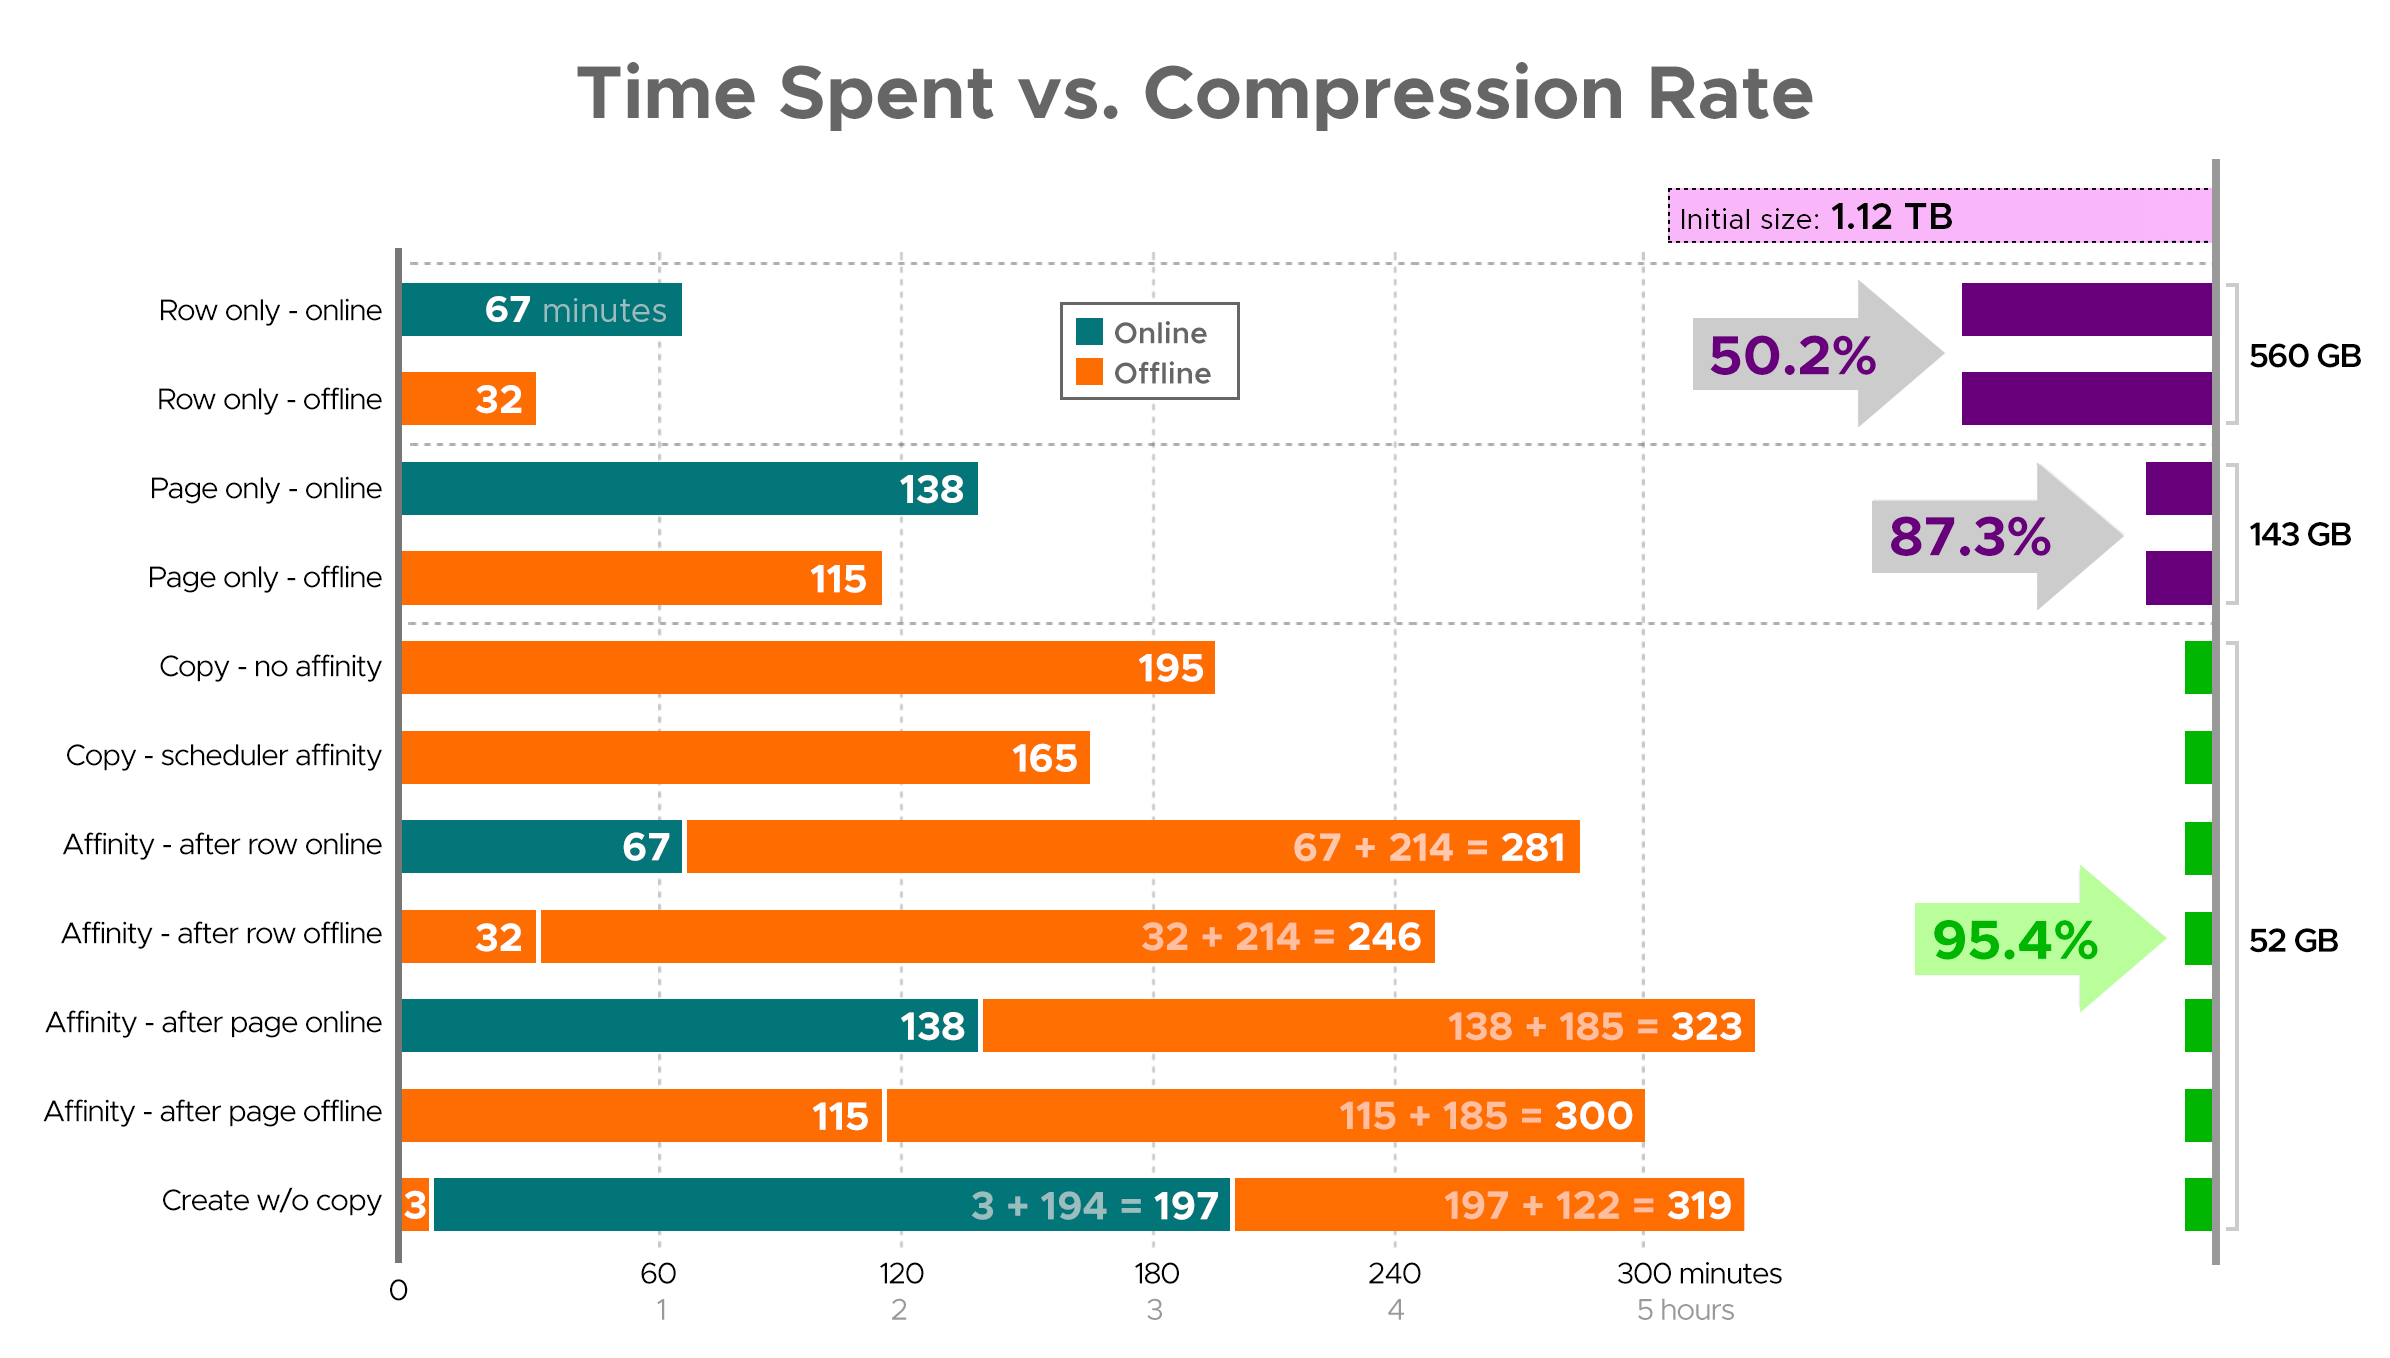 Time spent (minutes) vs. compression rate